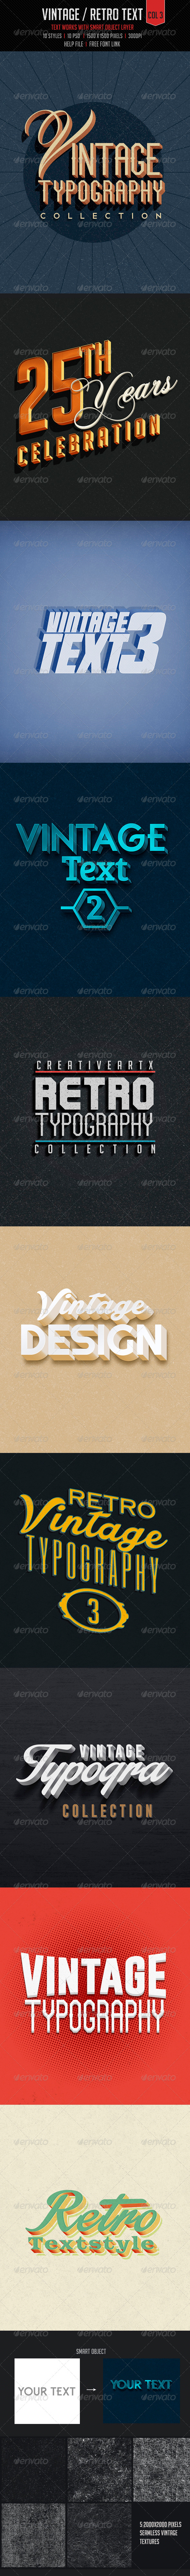 GraphicRiver Vintage Retro Text Col3 7522204